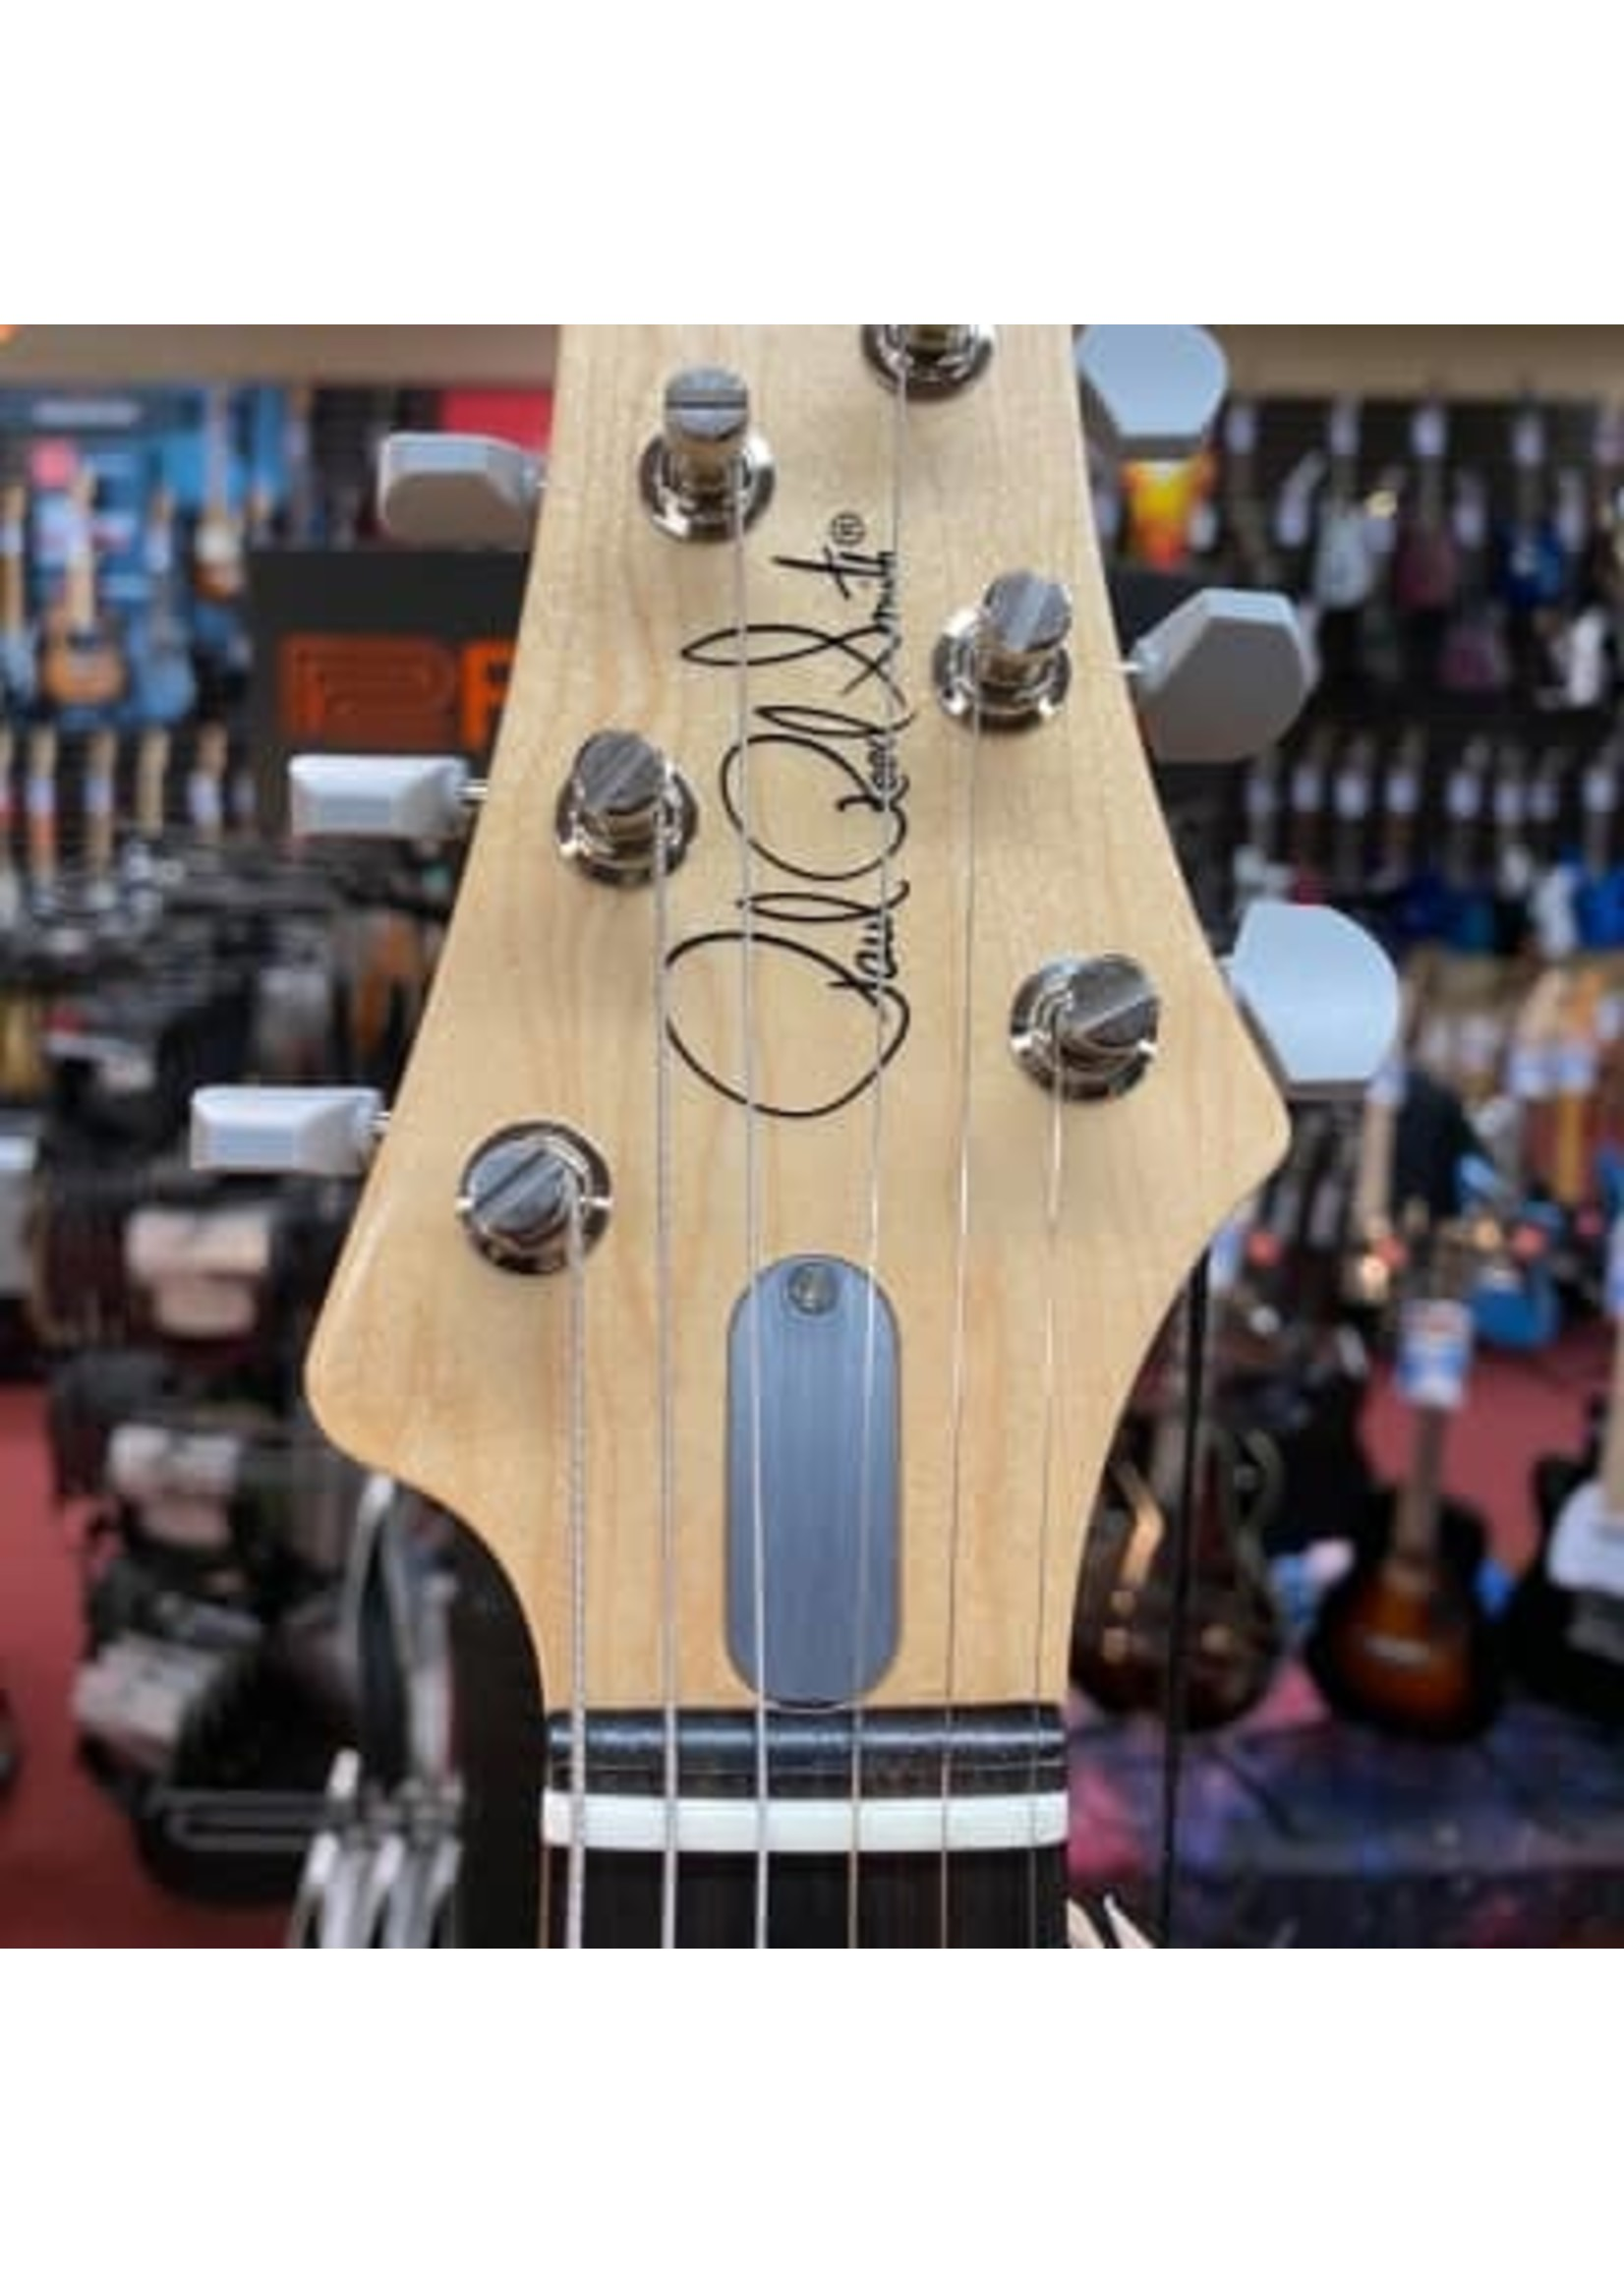 Paul Reed Smith Paul Reed Smith Silver Sky Electric Guitar - Moc Sand Satin with Rosewood Fingerboard